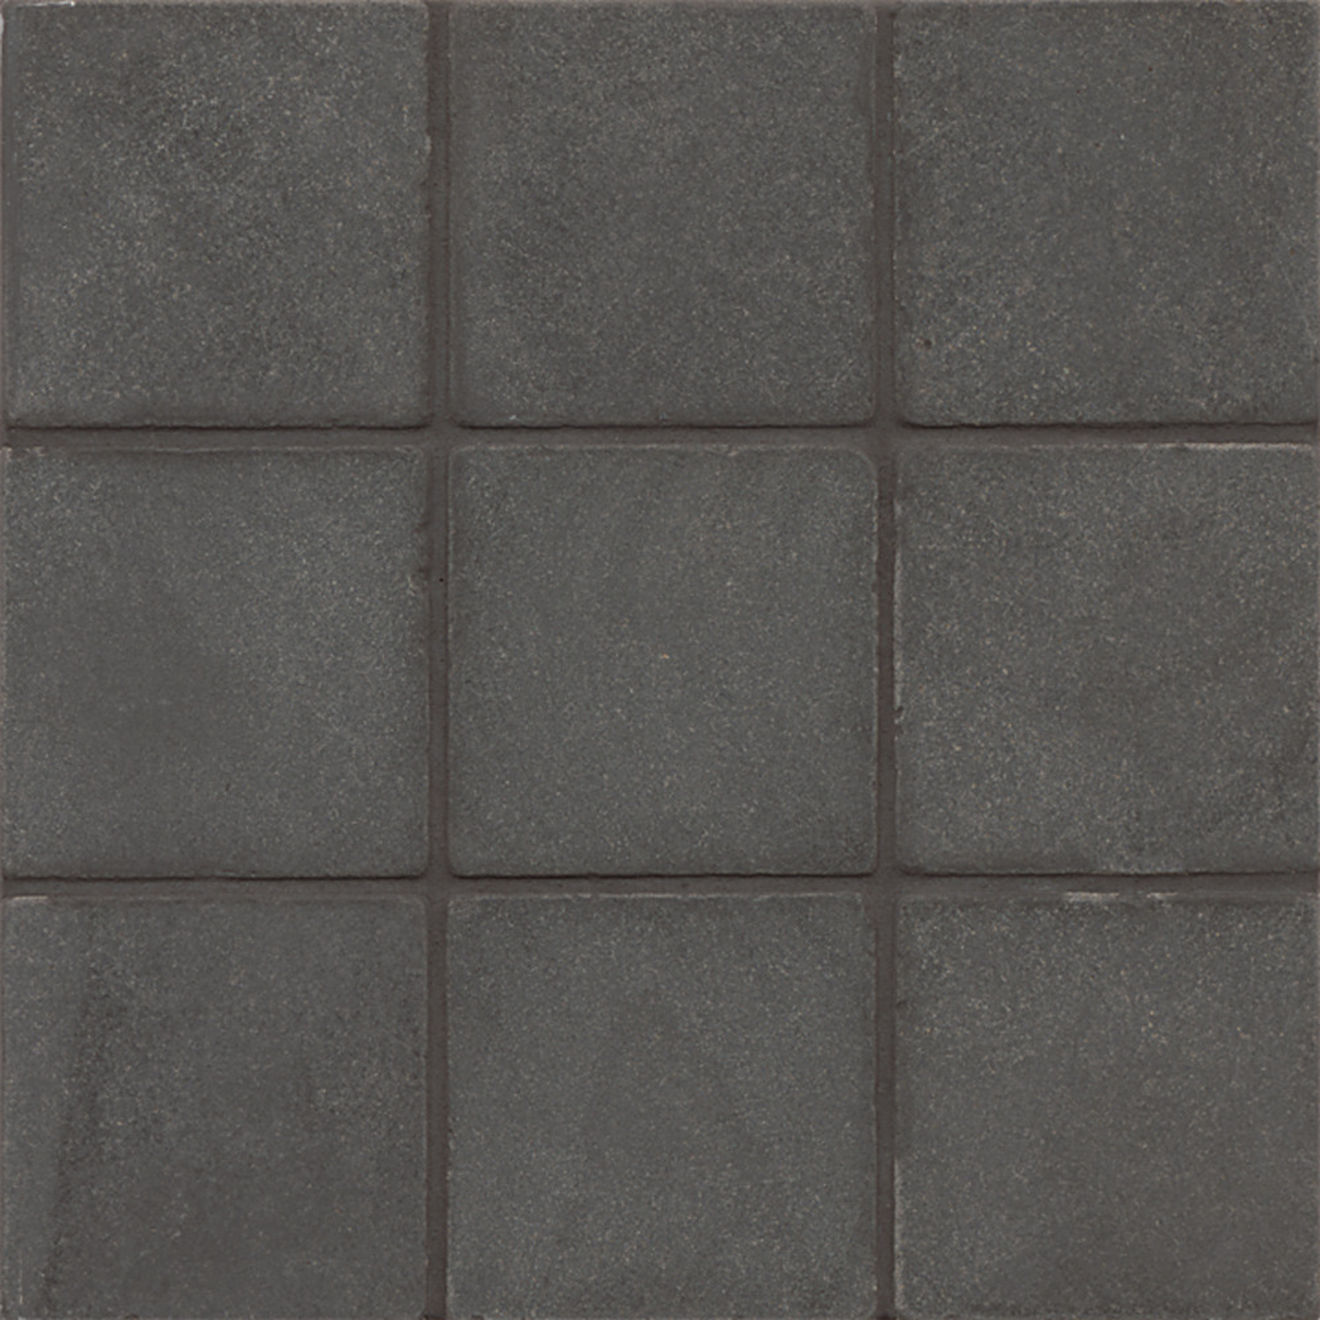 Absolute Black 4.00 x 4.00 Floor & Wall Tile